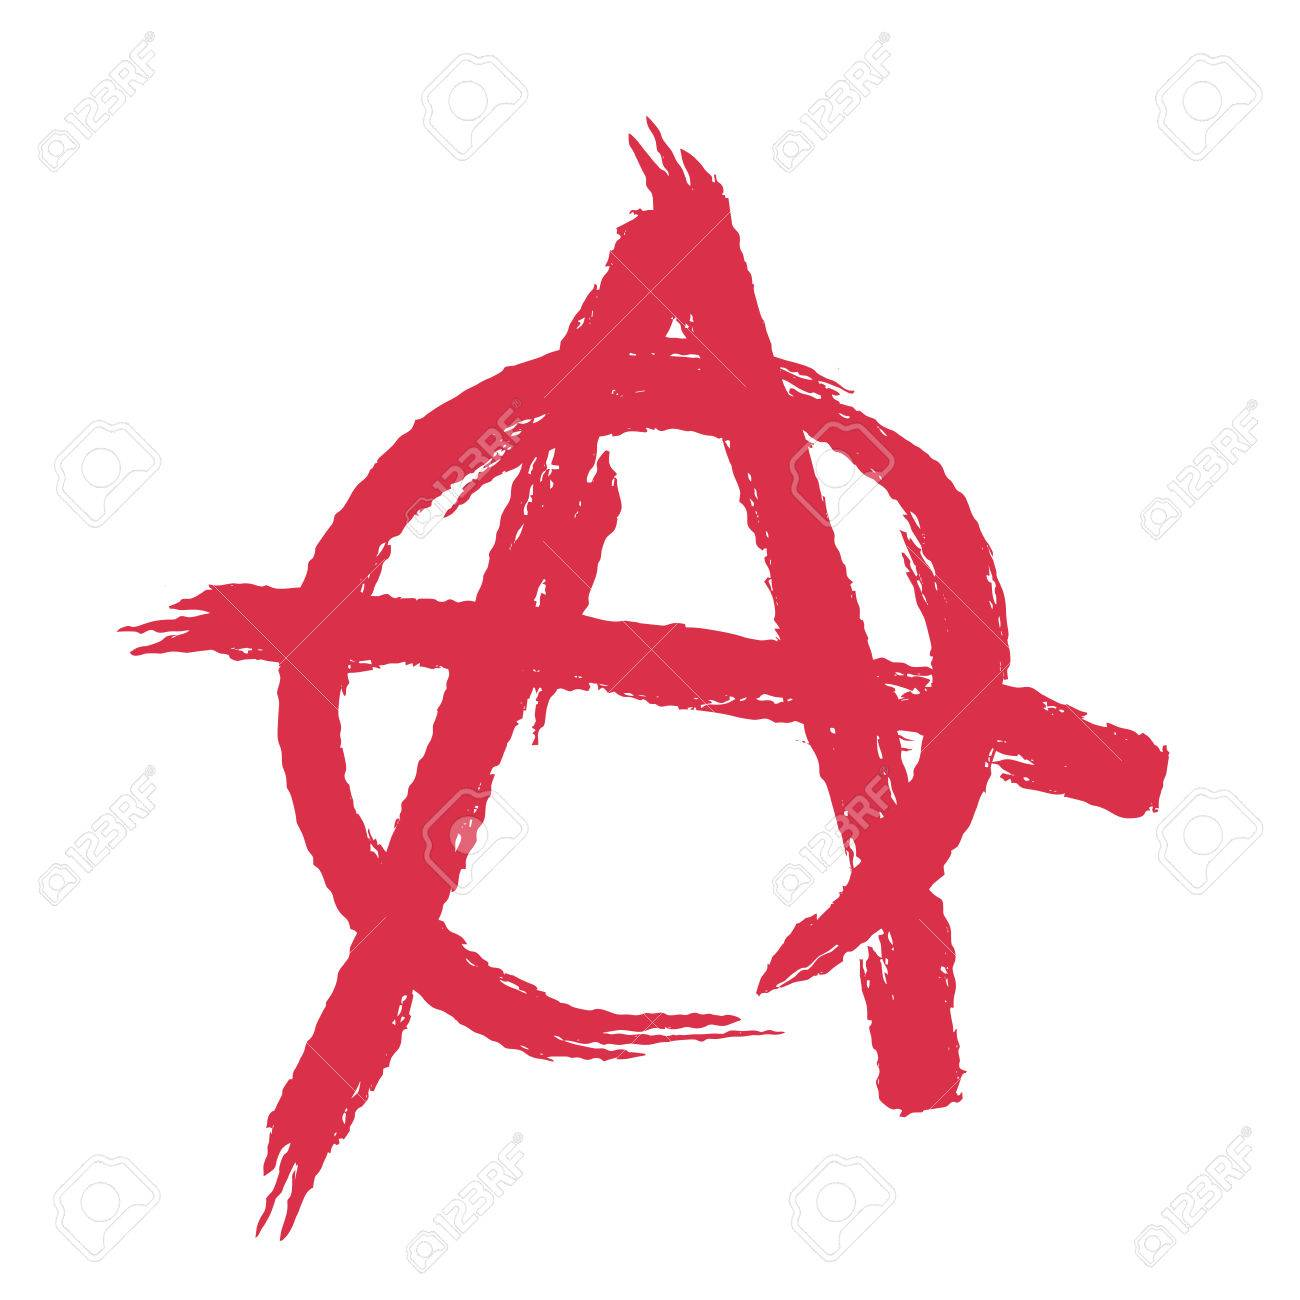 anarchy sign isolated brush strokes grunge style royalty free